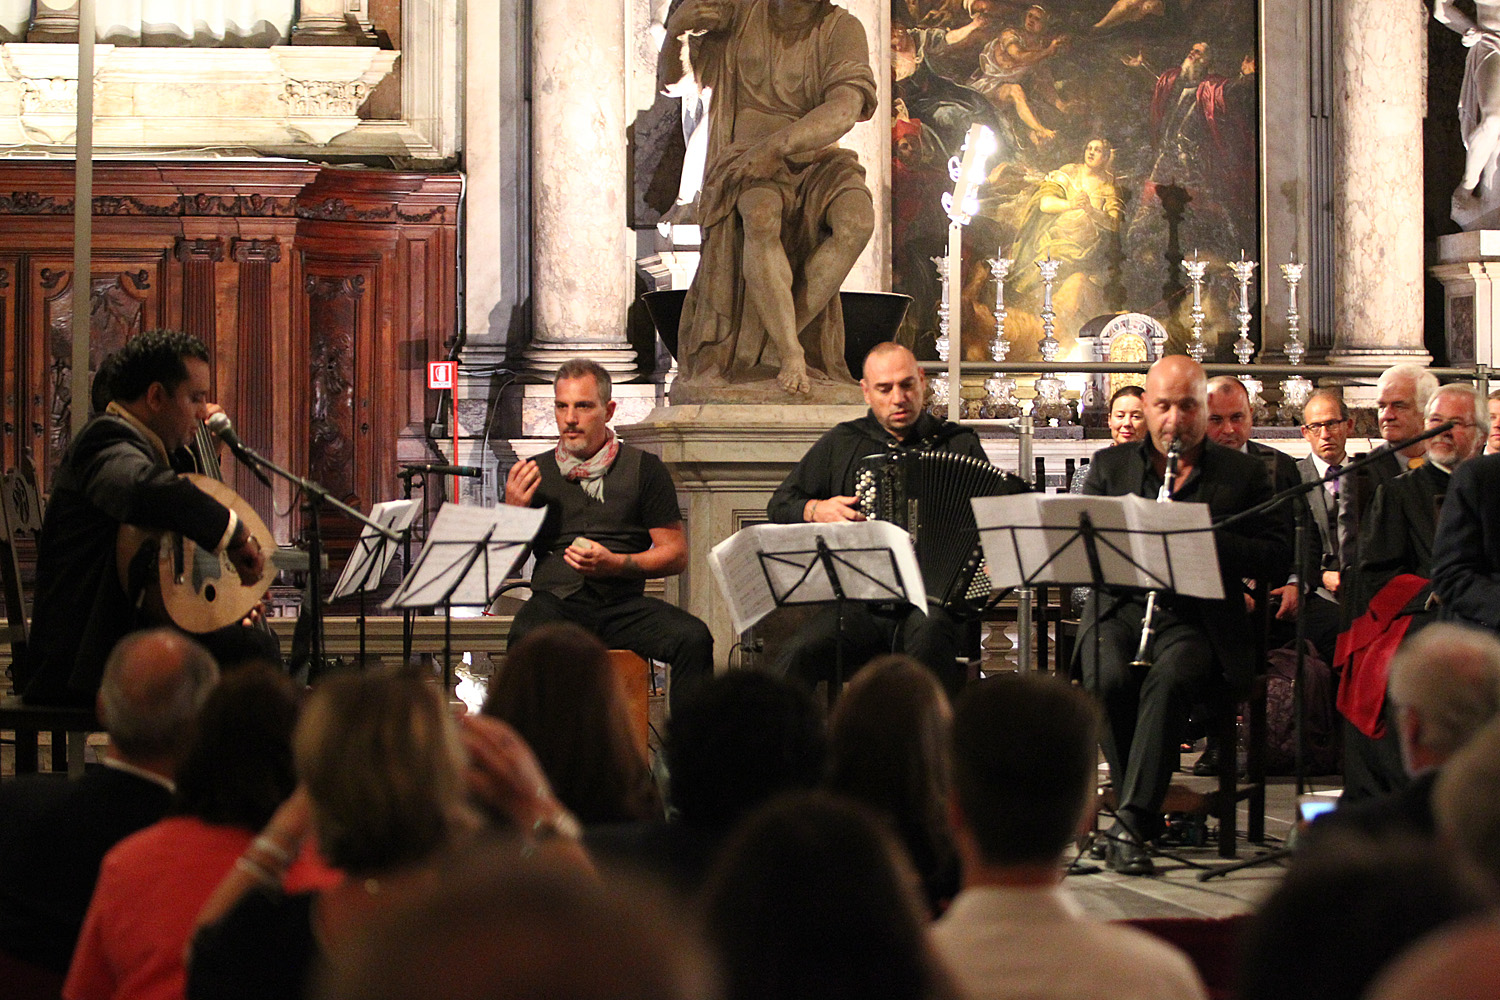 2016 Venice, Italy: The Human Rights Band performing for the graduating class of the European Inter-University Centre for Human Rights and Democratisation